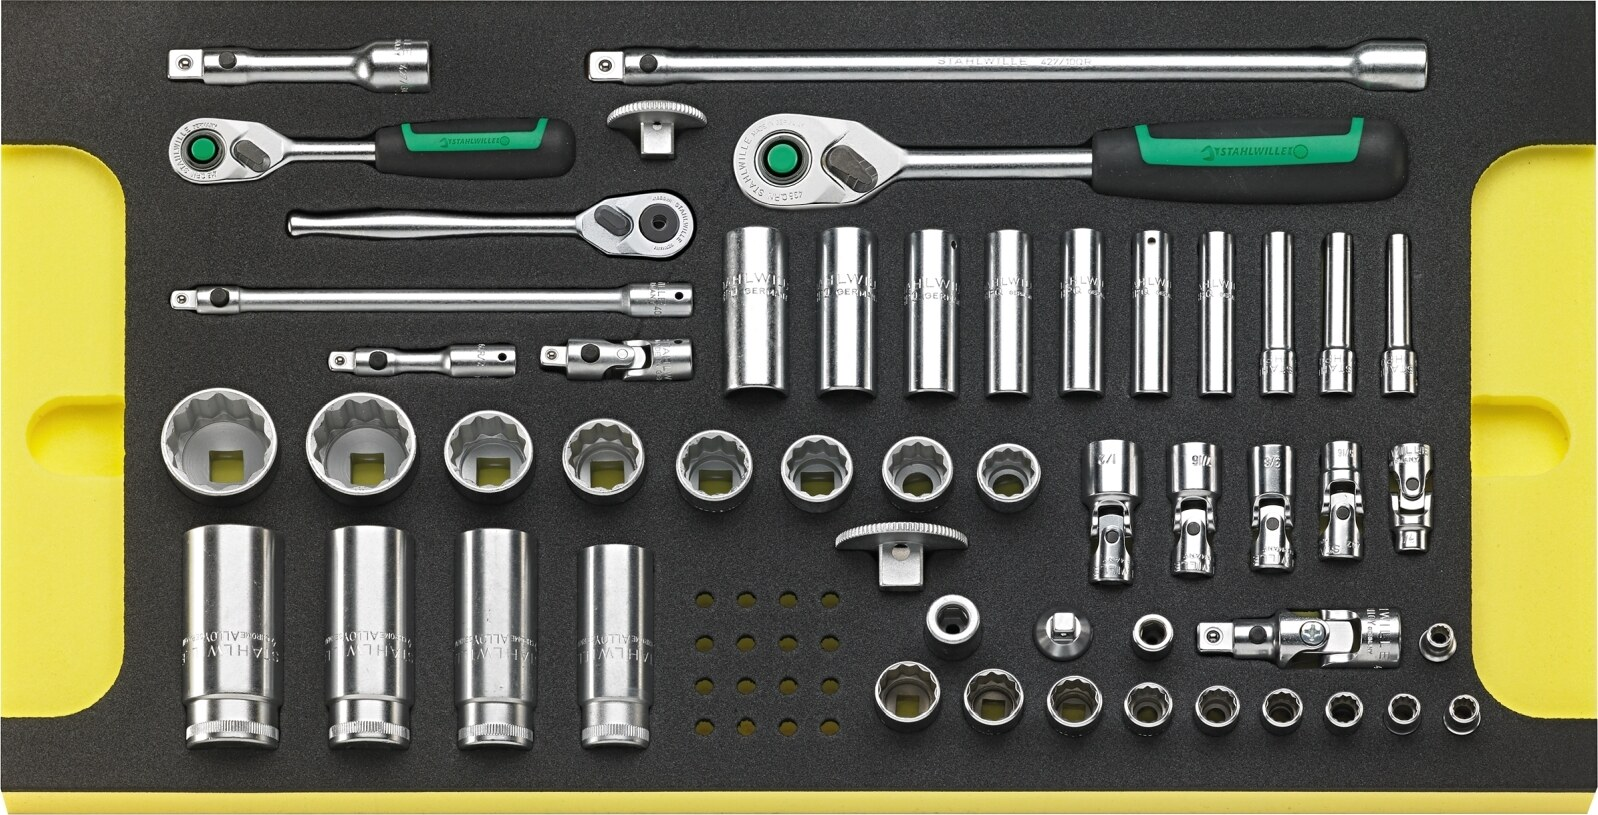 Stahlwille Line maintenance set in tool trolley No.13214A WT/LR 122-pcs., No TCS_13214_WT_LR_TCS_13214a_WT_LR_96830102.jpg